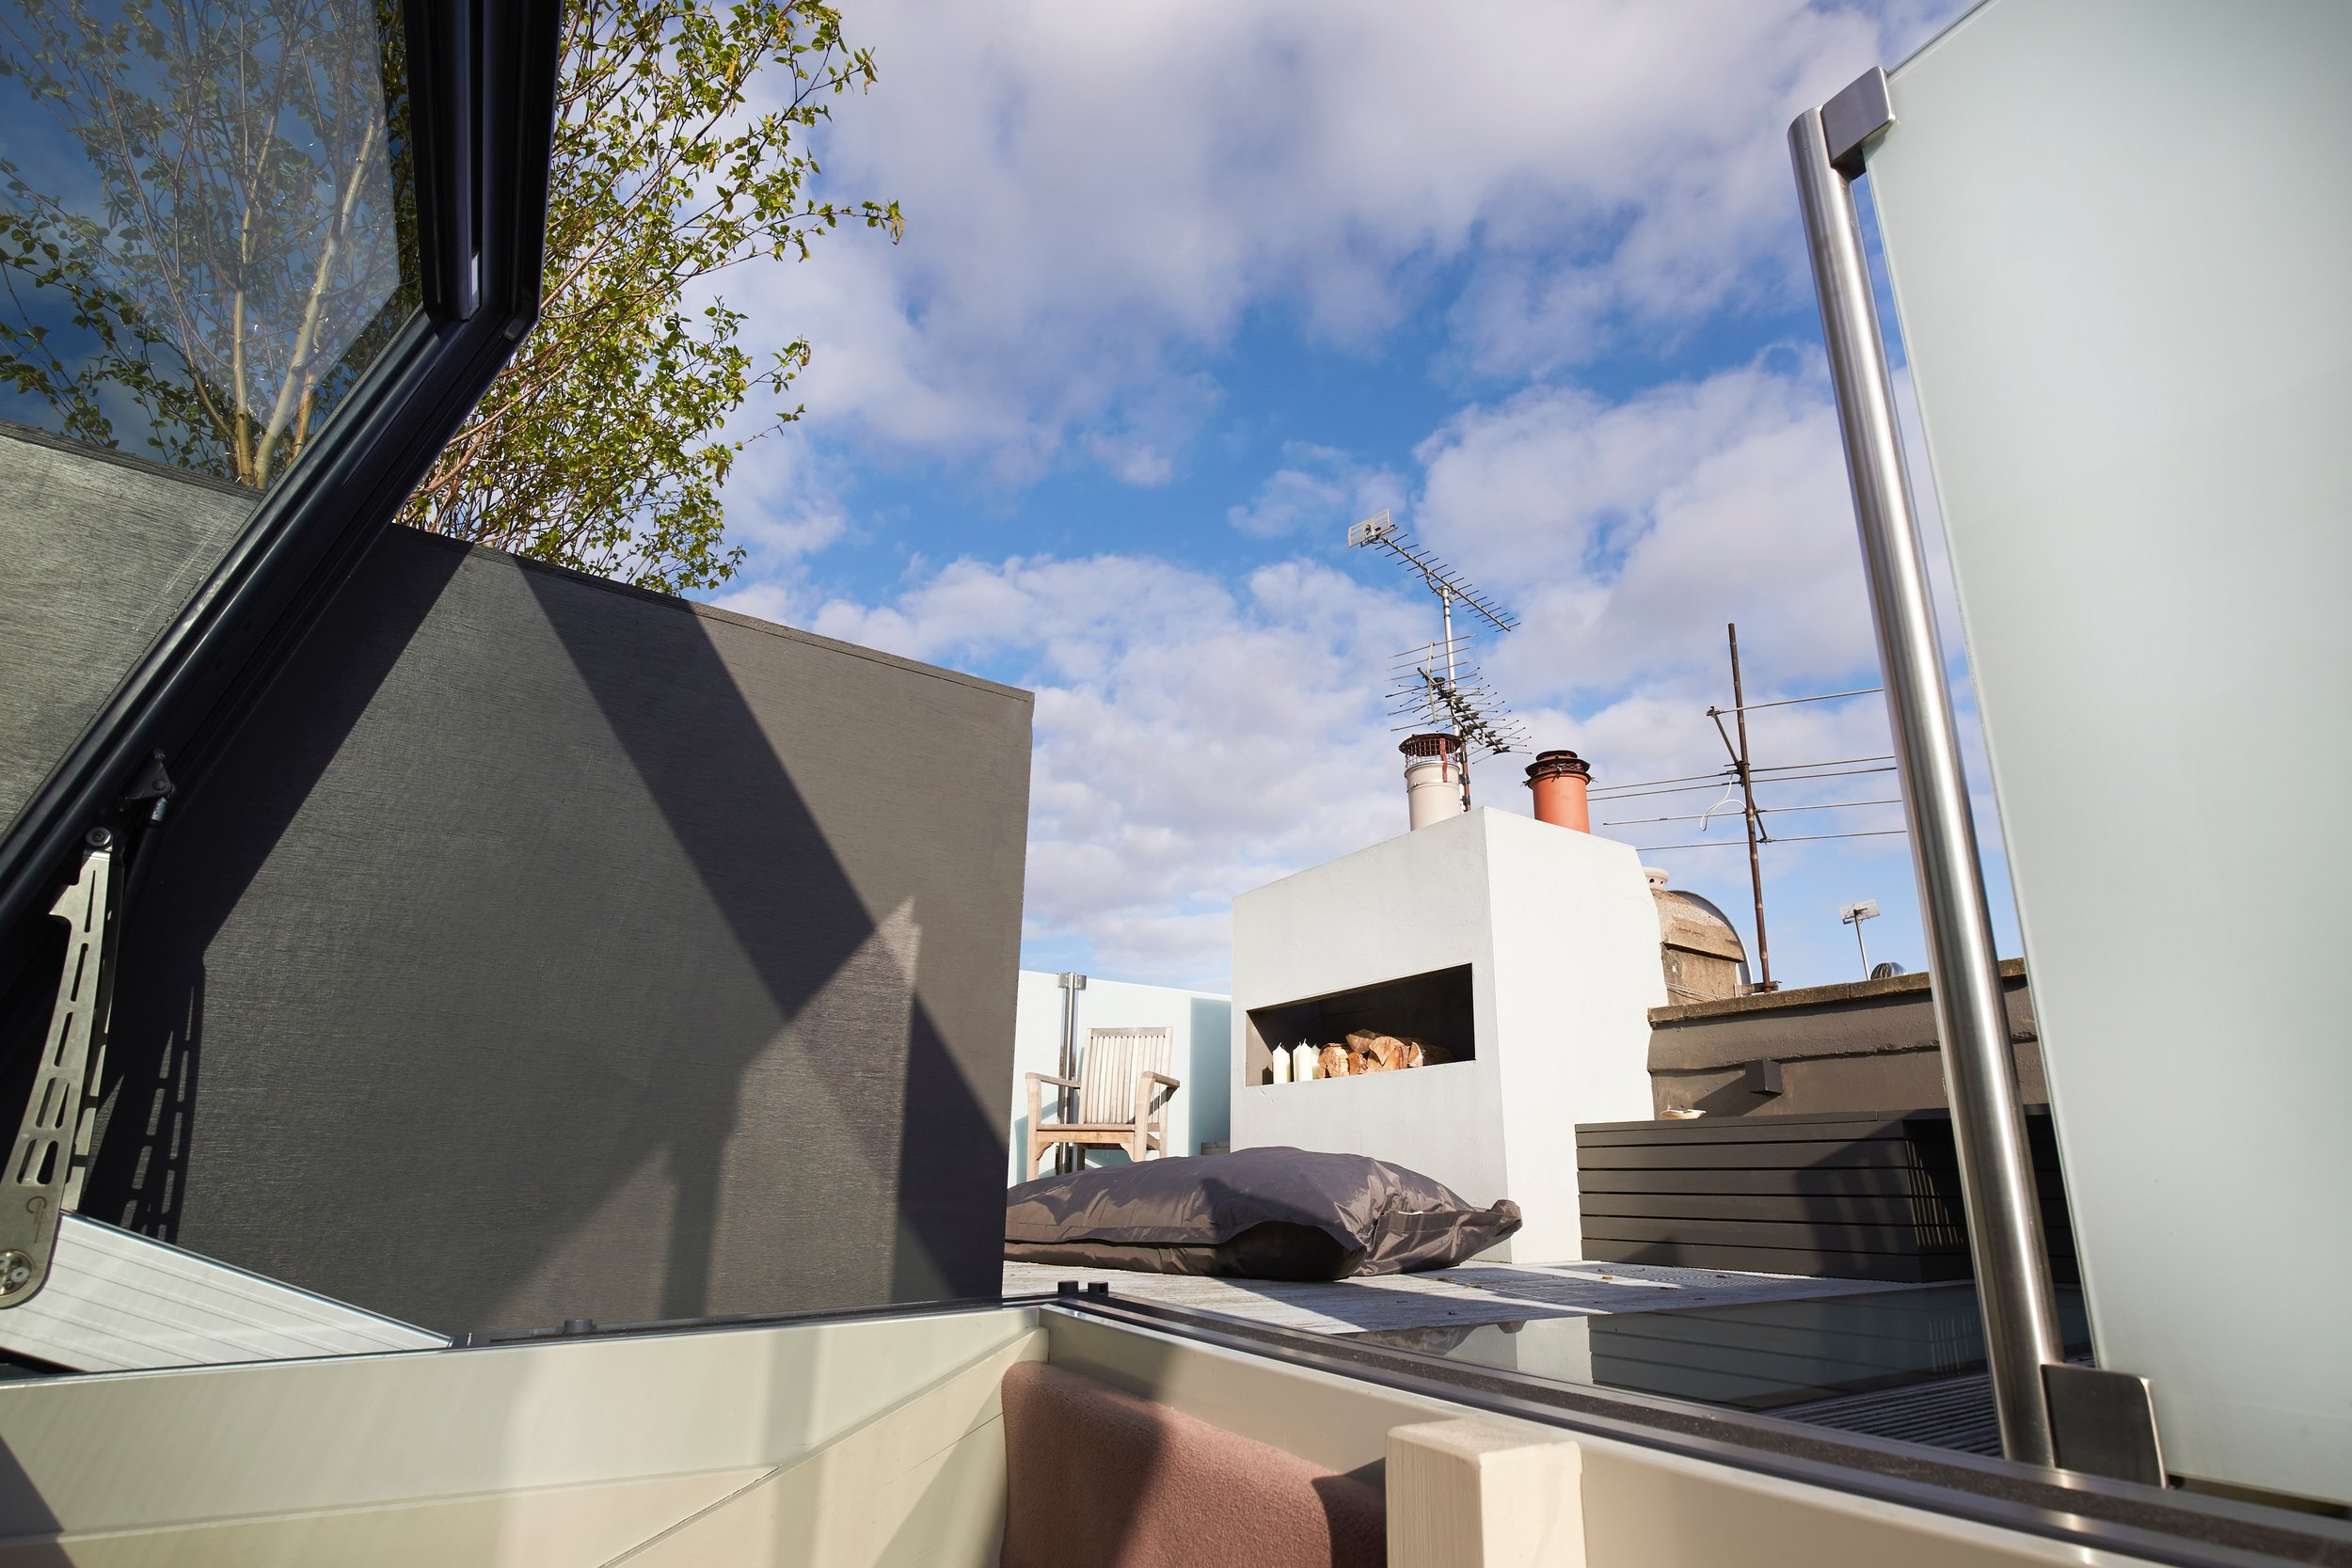 Roof Terrace Notting Hill, The Kitchen and Loft Company.